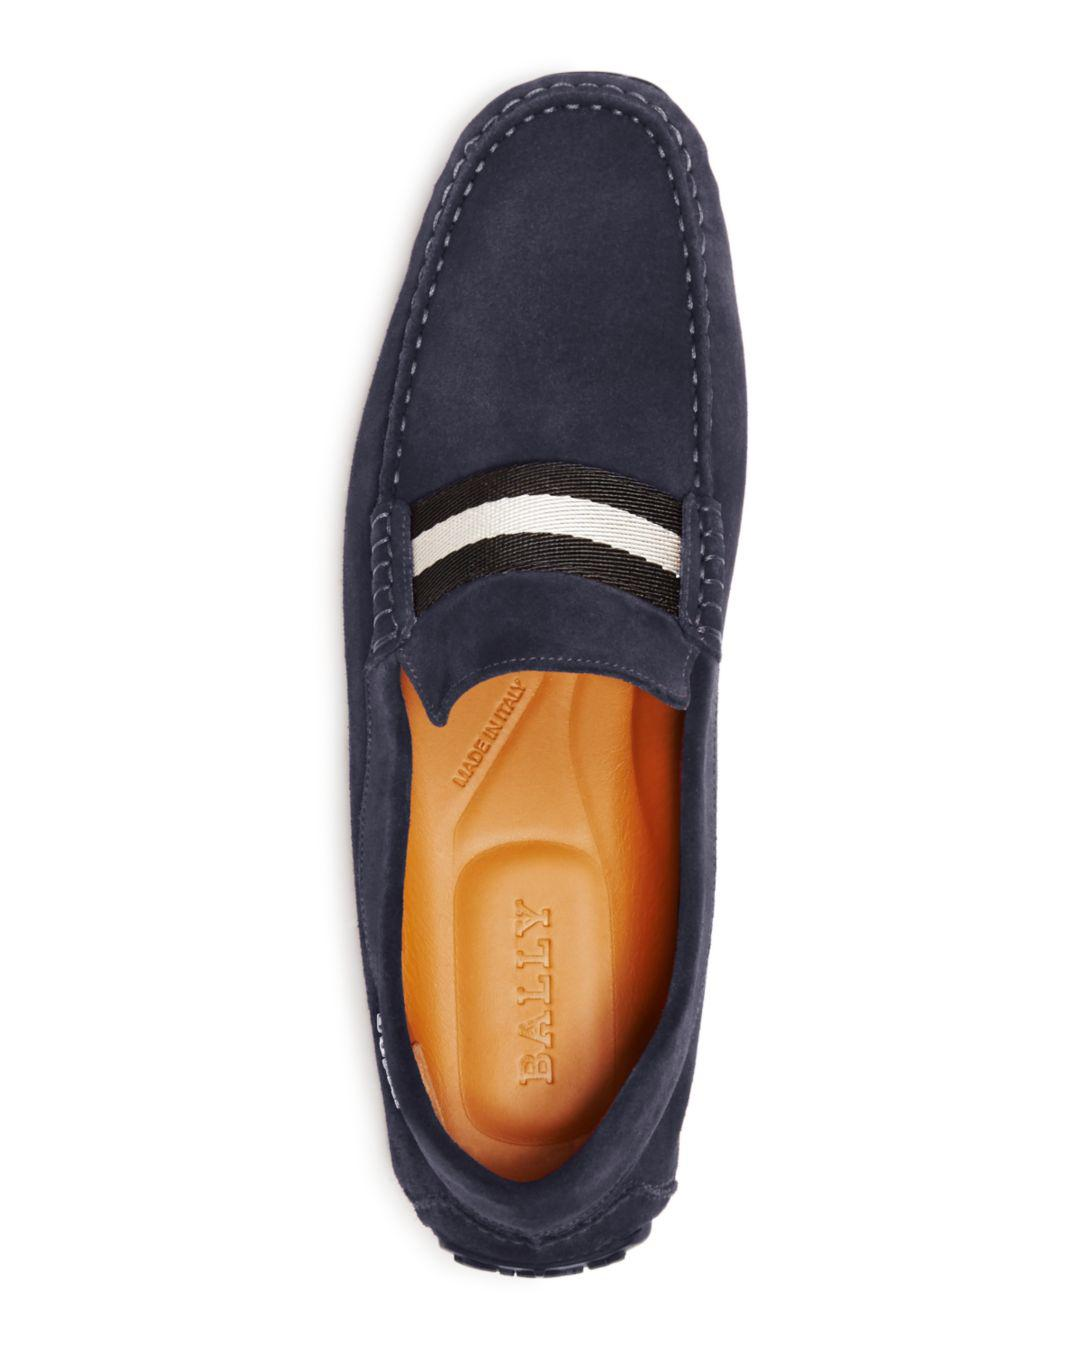 1f5799c887d Lyst - Bally Men s Pearce Suede Drivers in Blue for Men